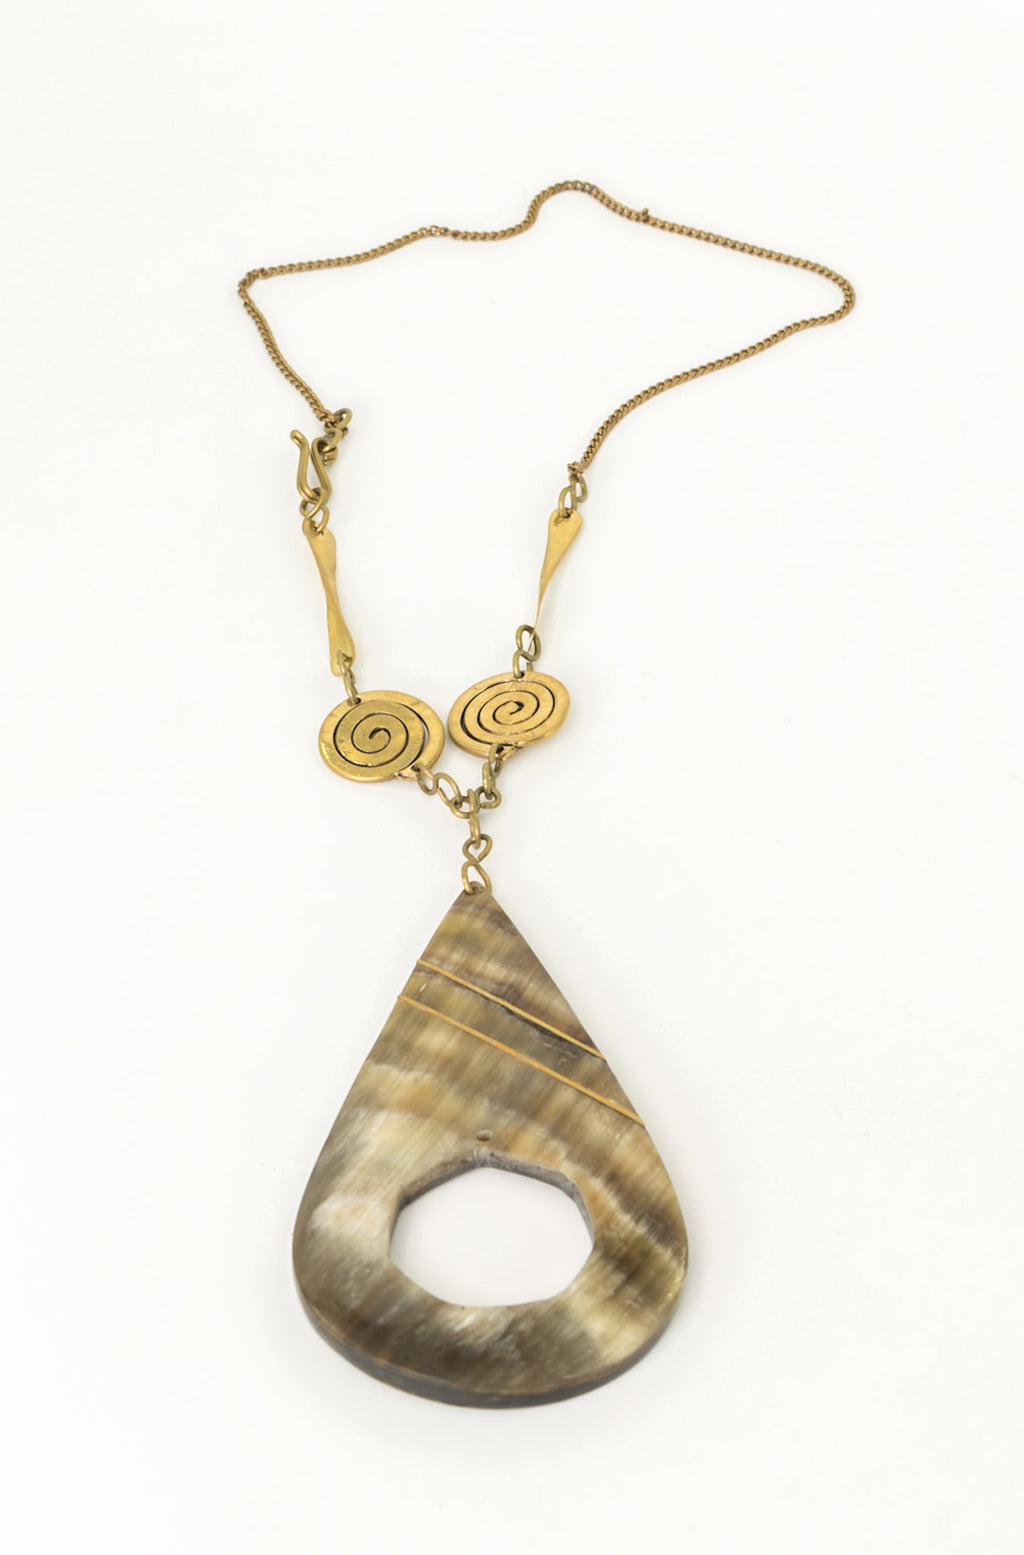 Machozi necklace